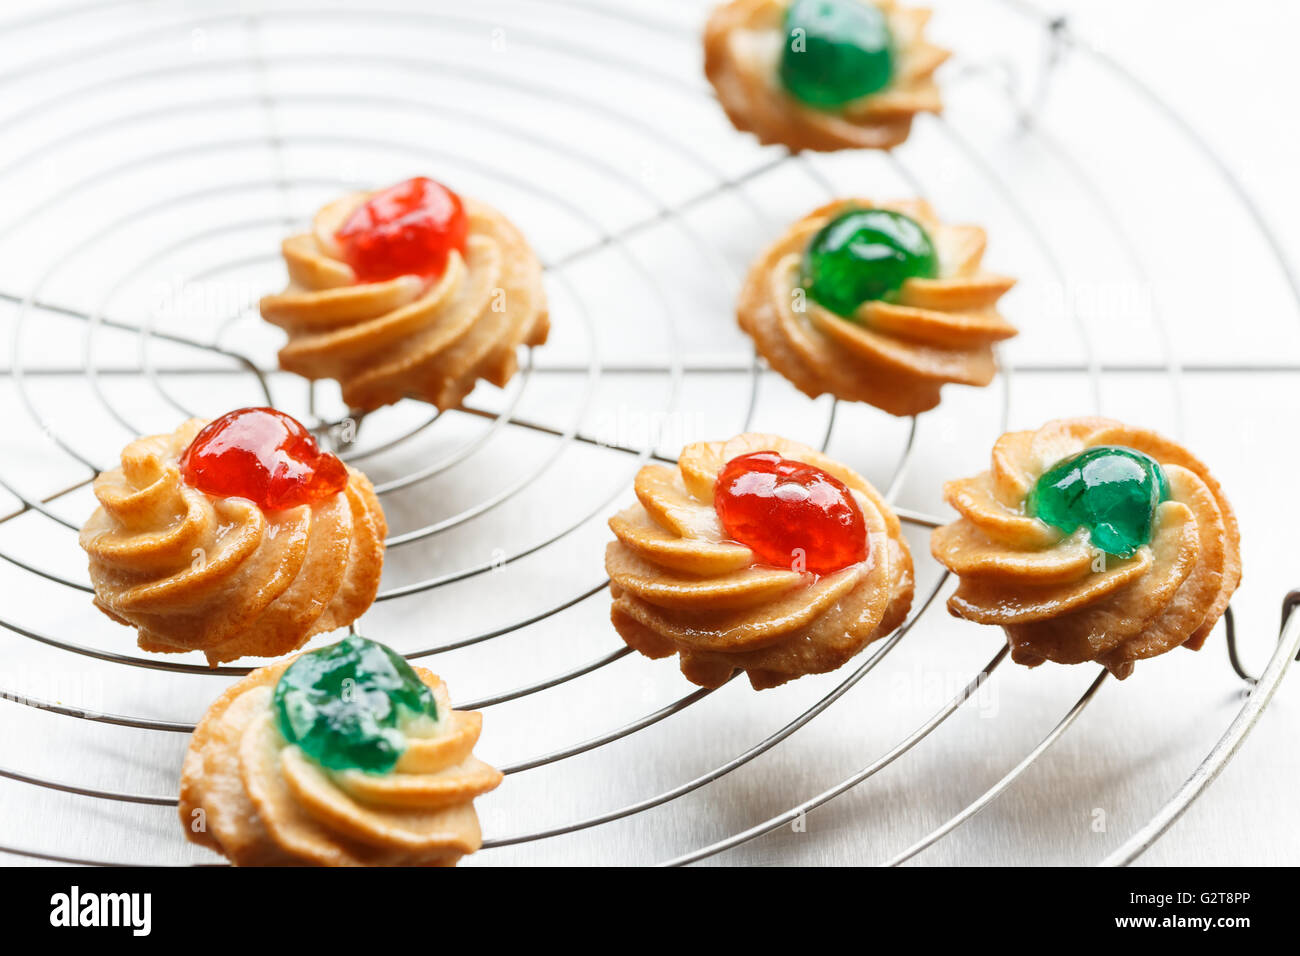 sicilian almond pastries with candied cherries on cake rack - Stock Image